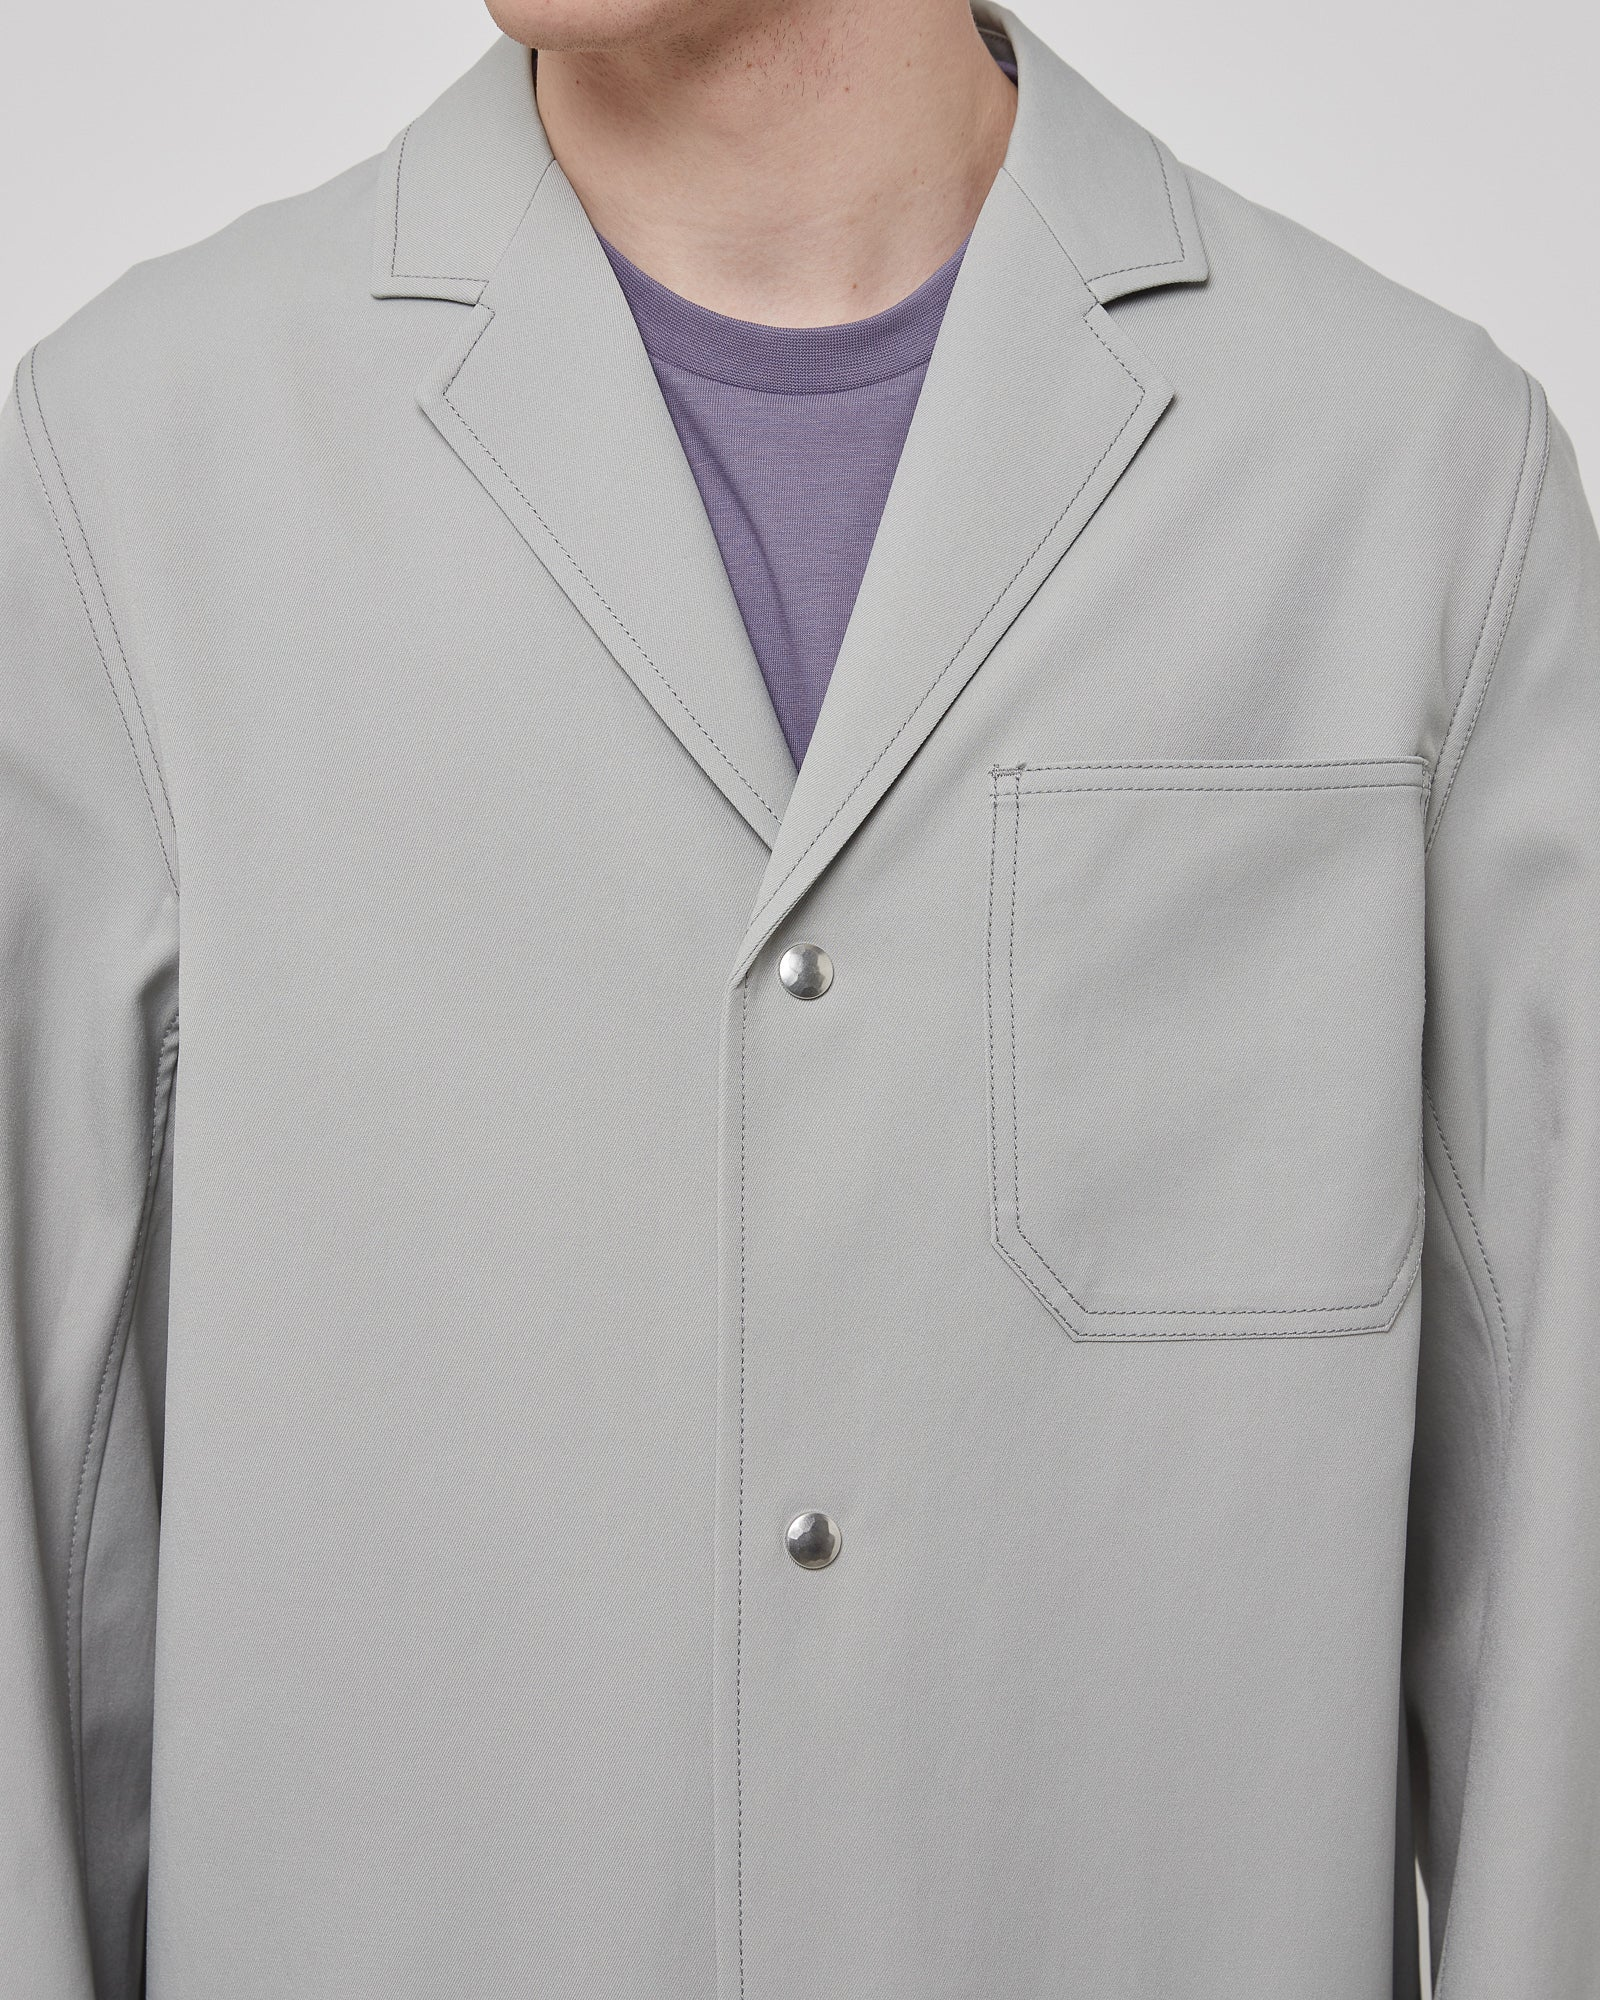 Control Coat in Mineral Gray